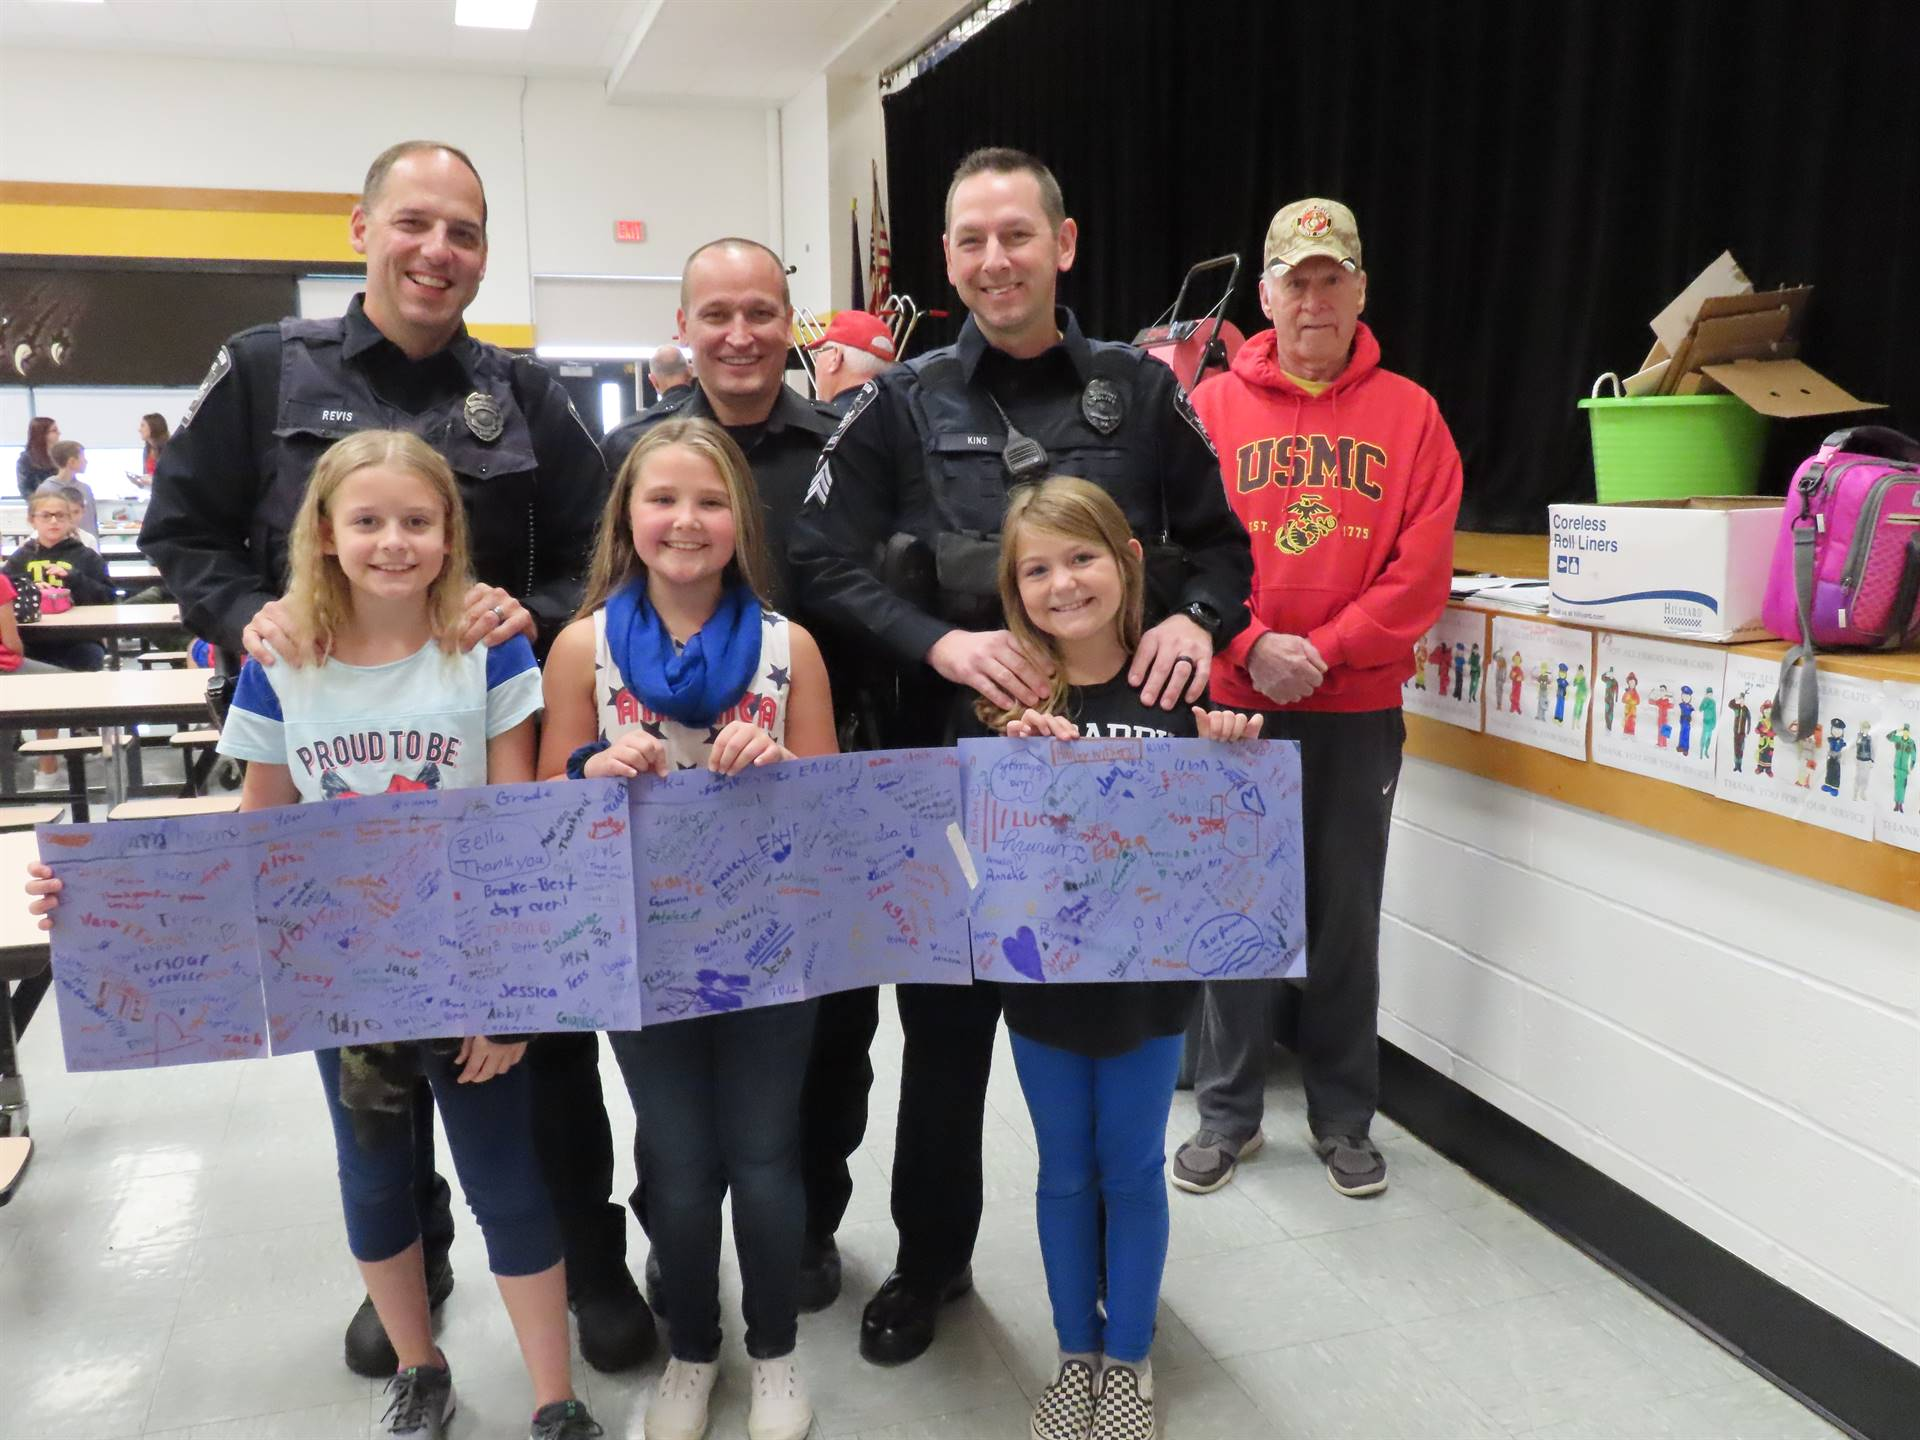 First responders with daughters and their thank you cards